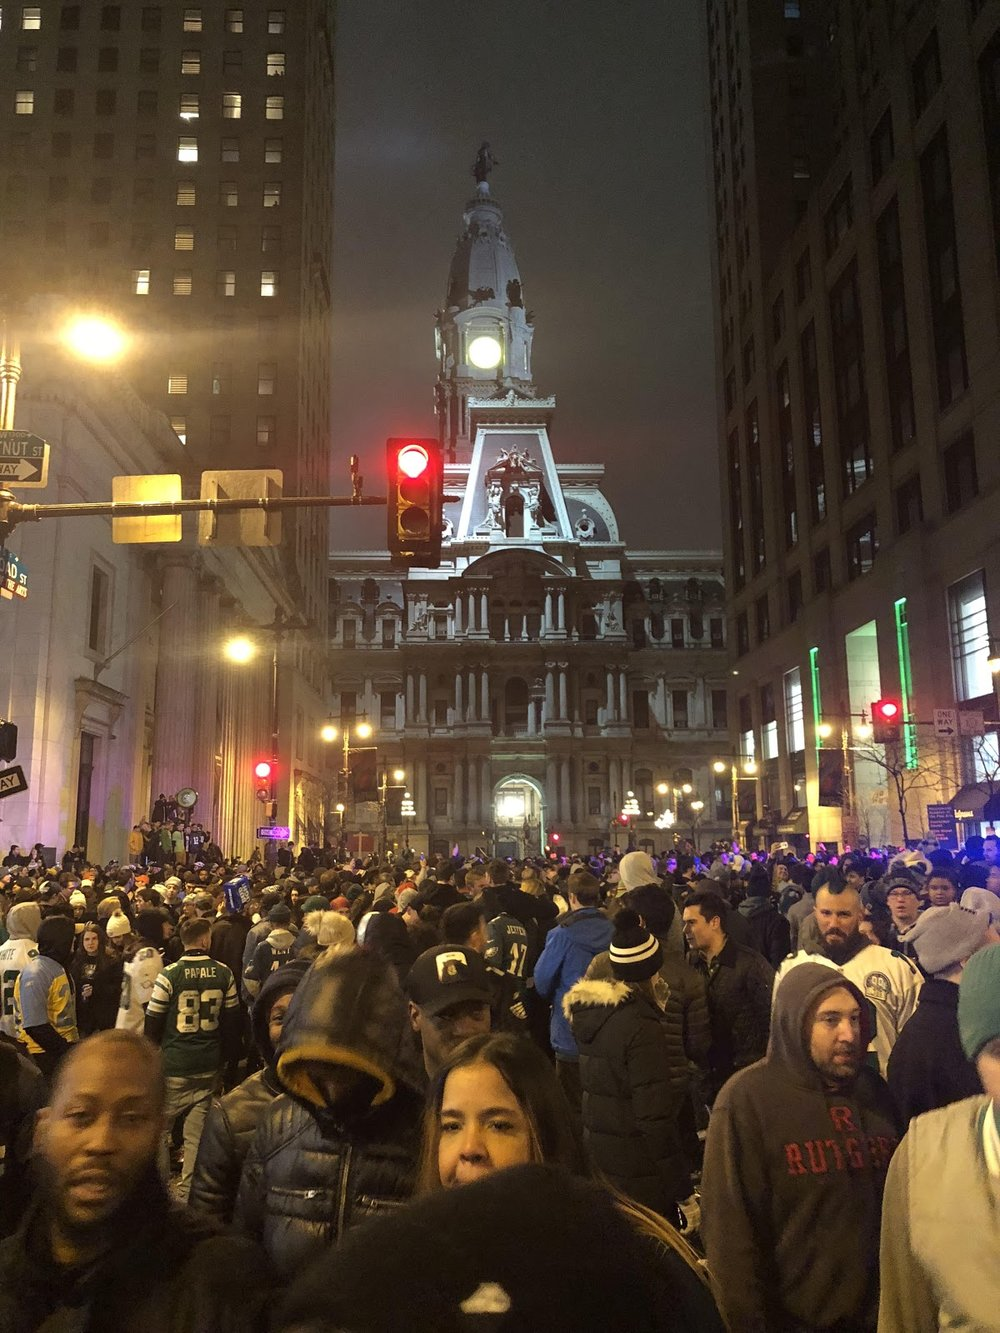 Fans pack the streets of Philadelphia. Photo Courtesy of Michael Conway.